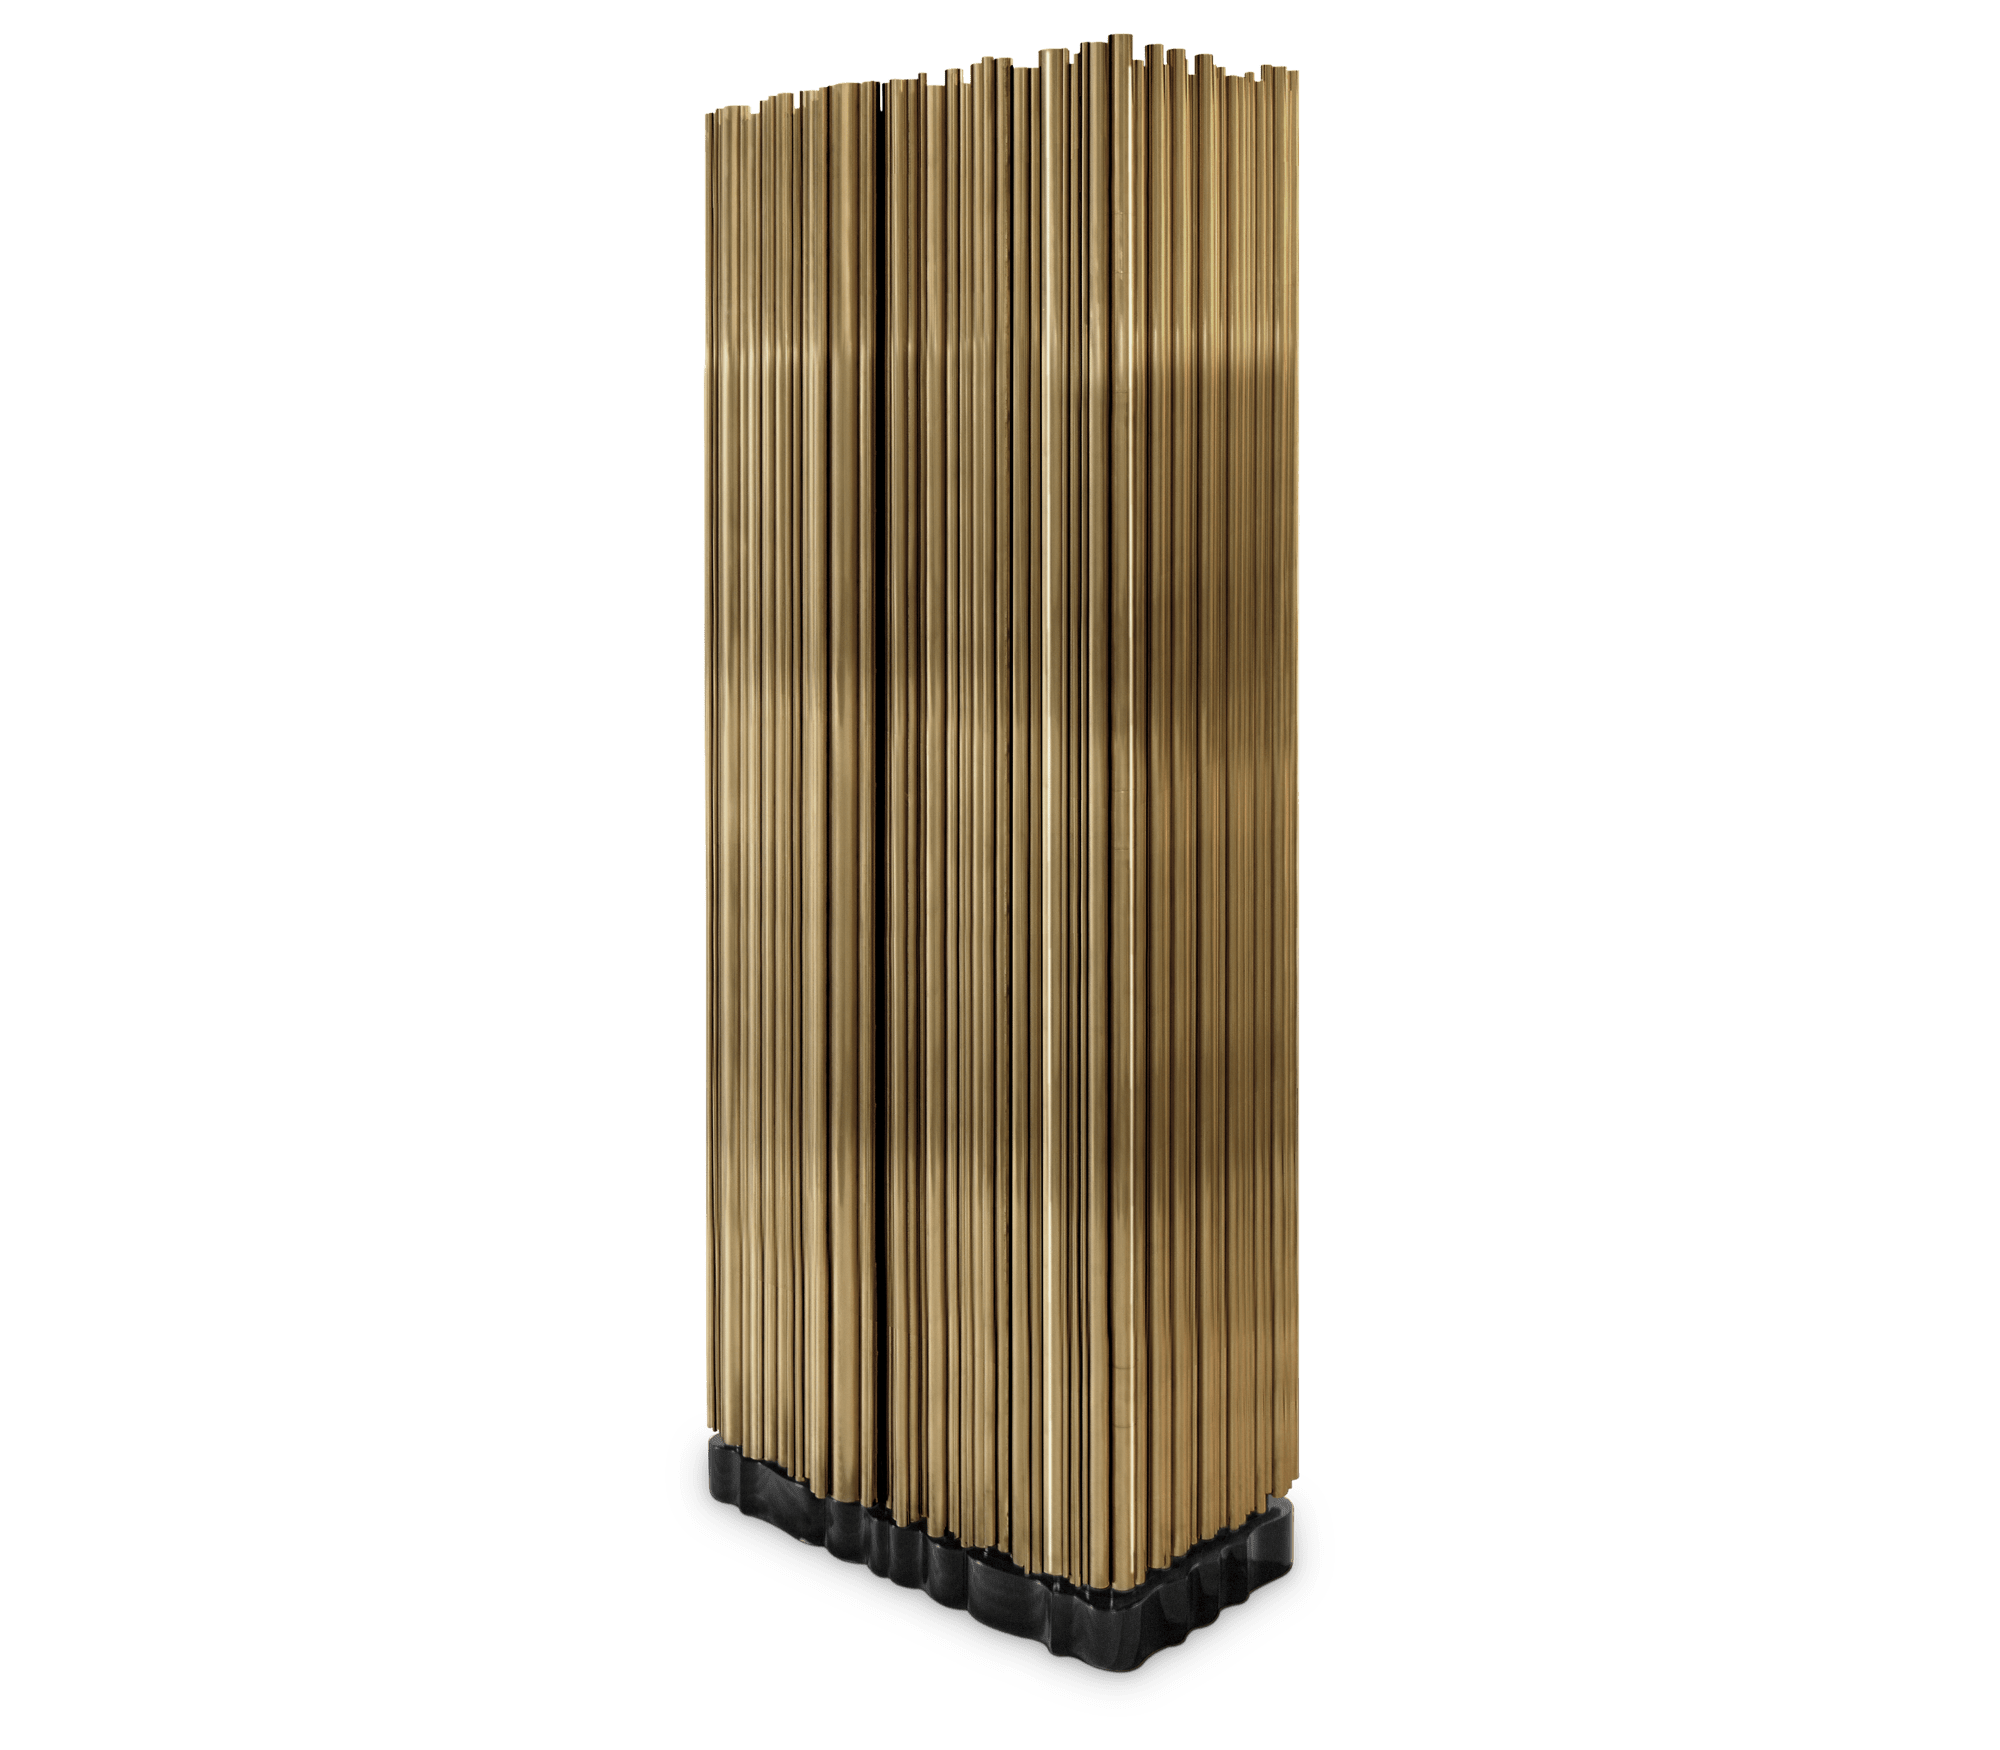 Symphony Cabinet Limited Edition | Boca do Lobo